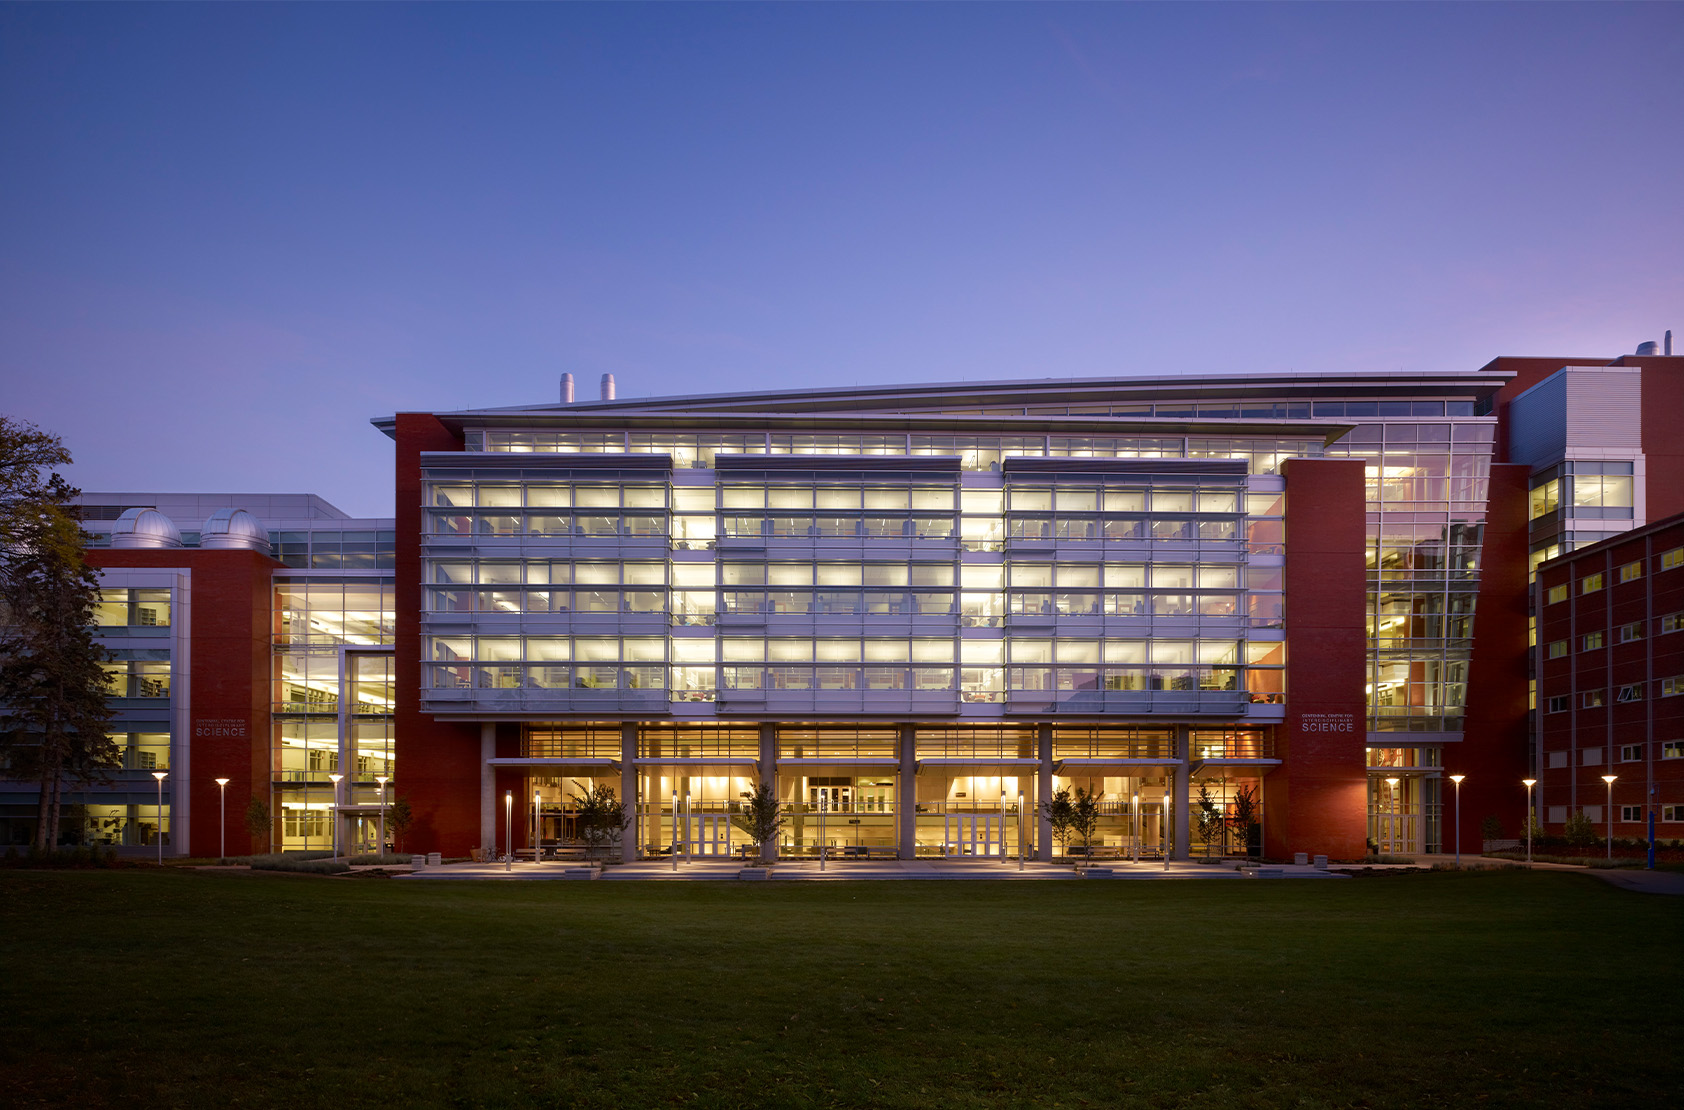 University of Alberta - Centennial Centre for Interdisciplinary Science